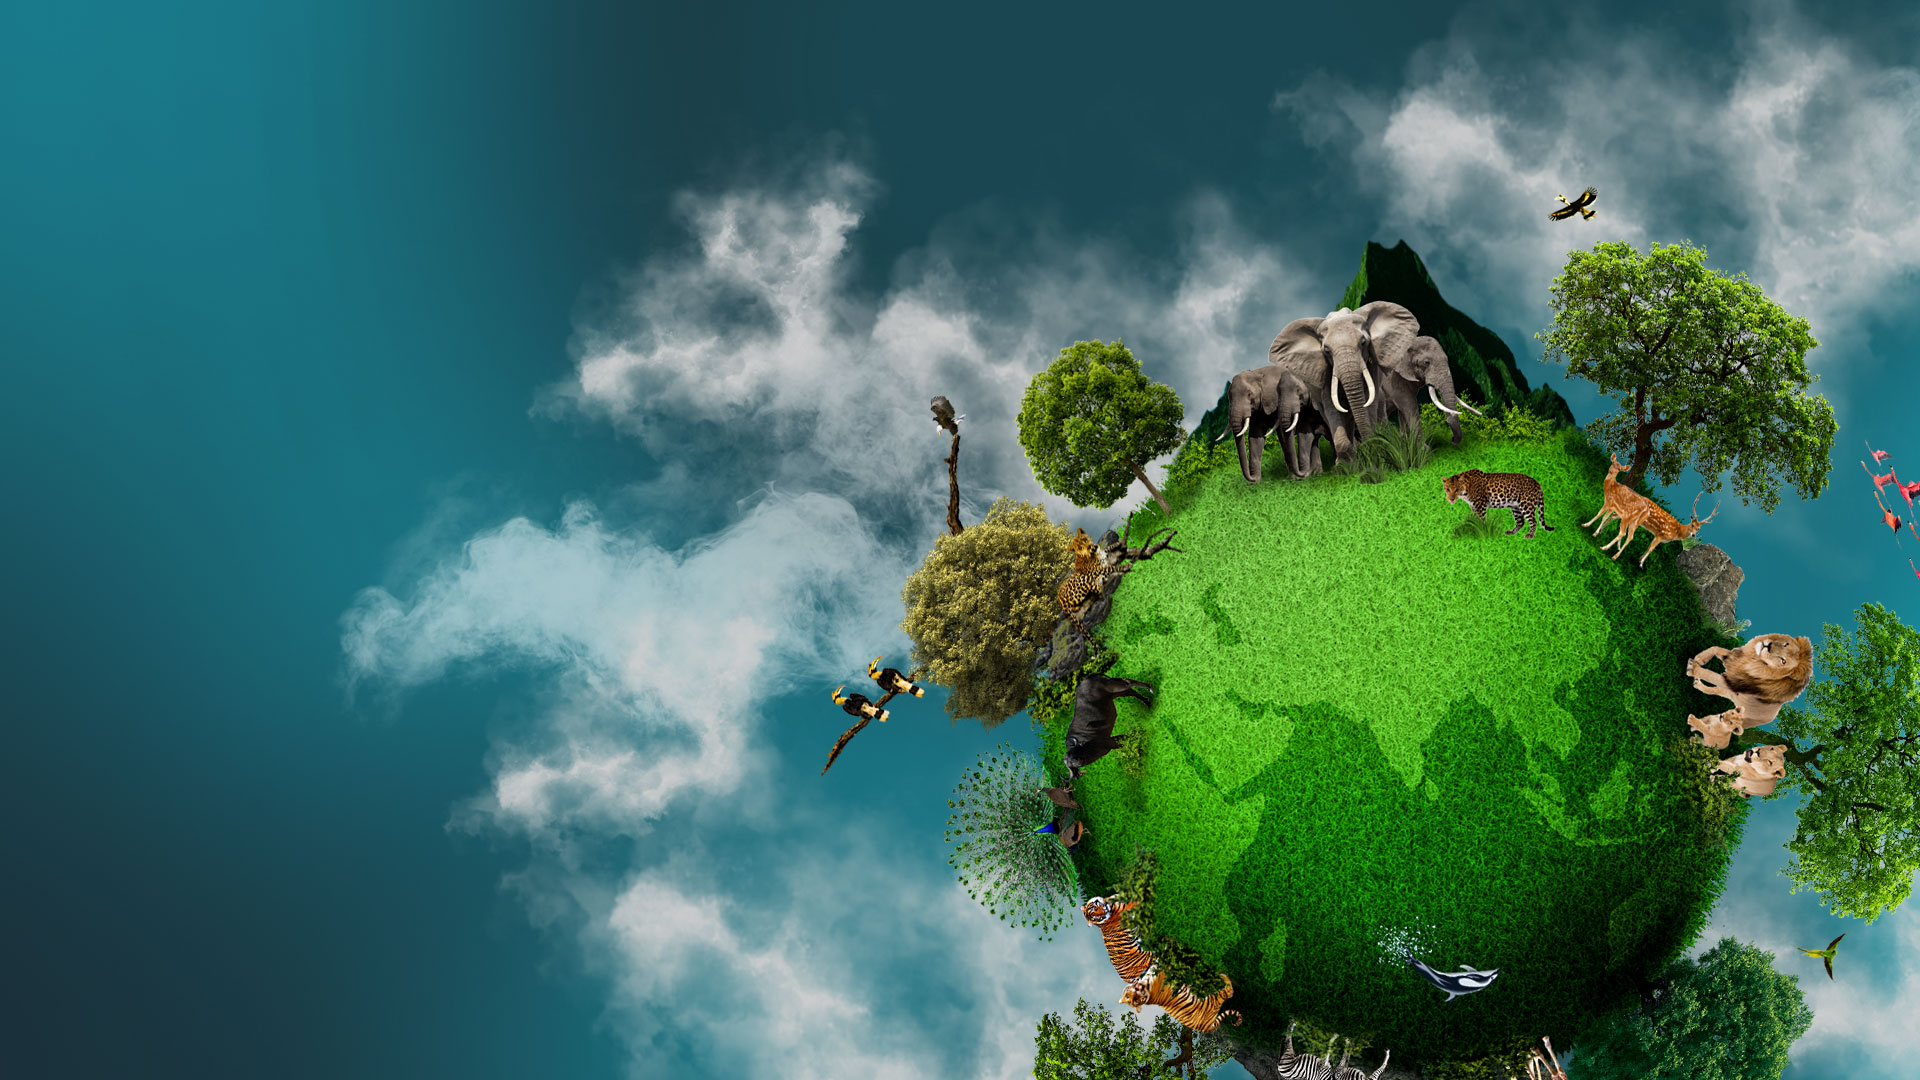 save-tree-save-life-society-banner-protect-our-earth-and-animals